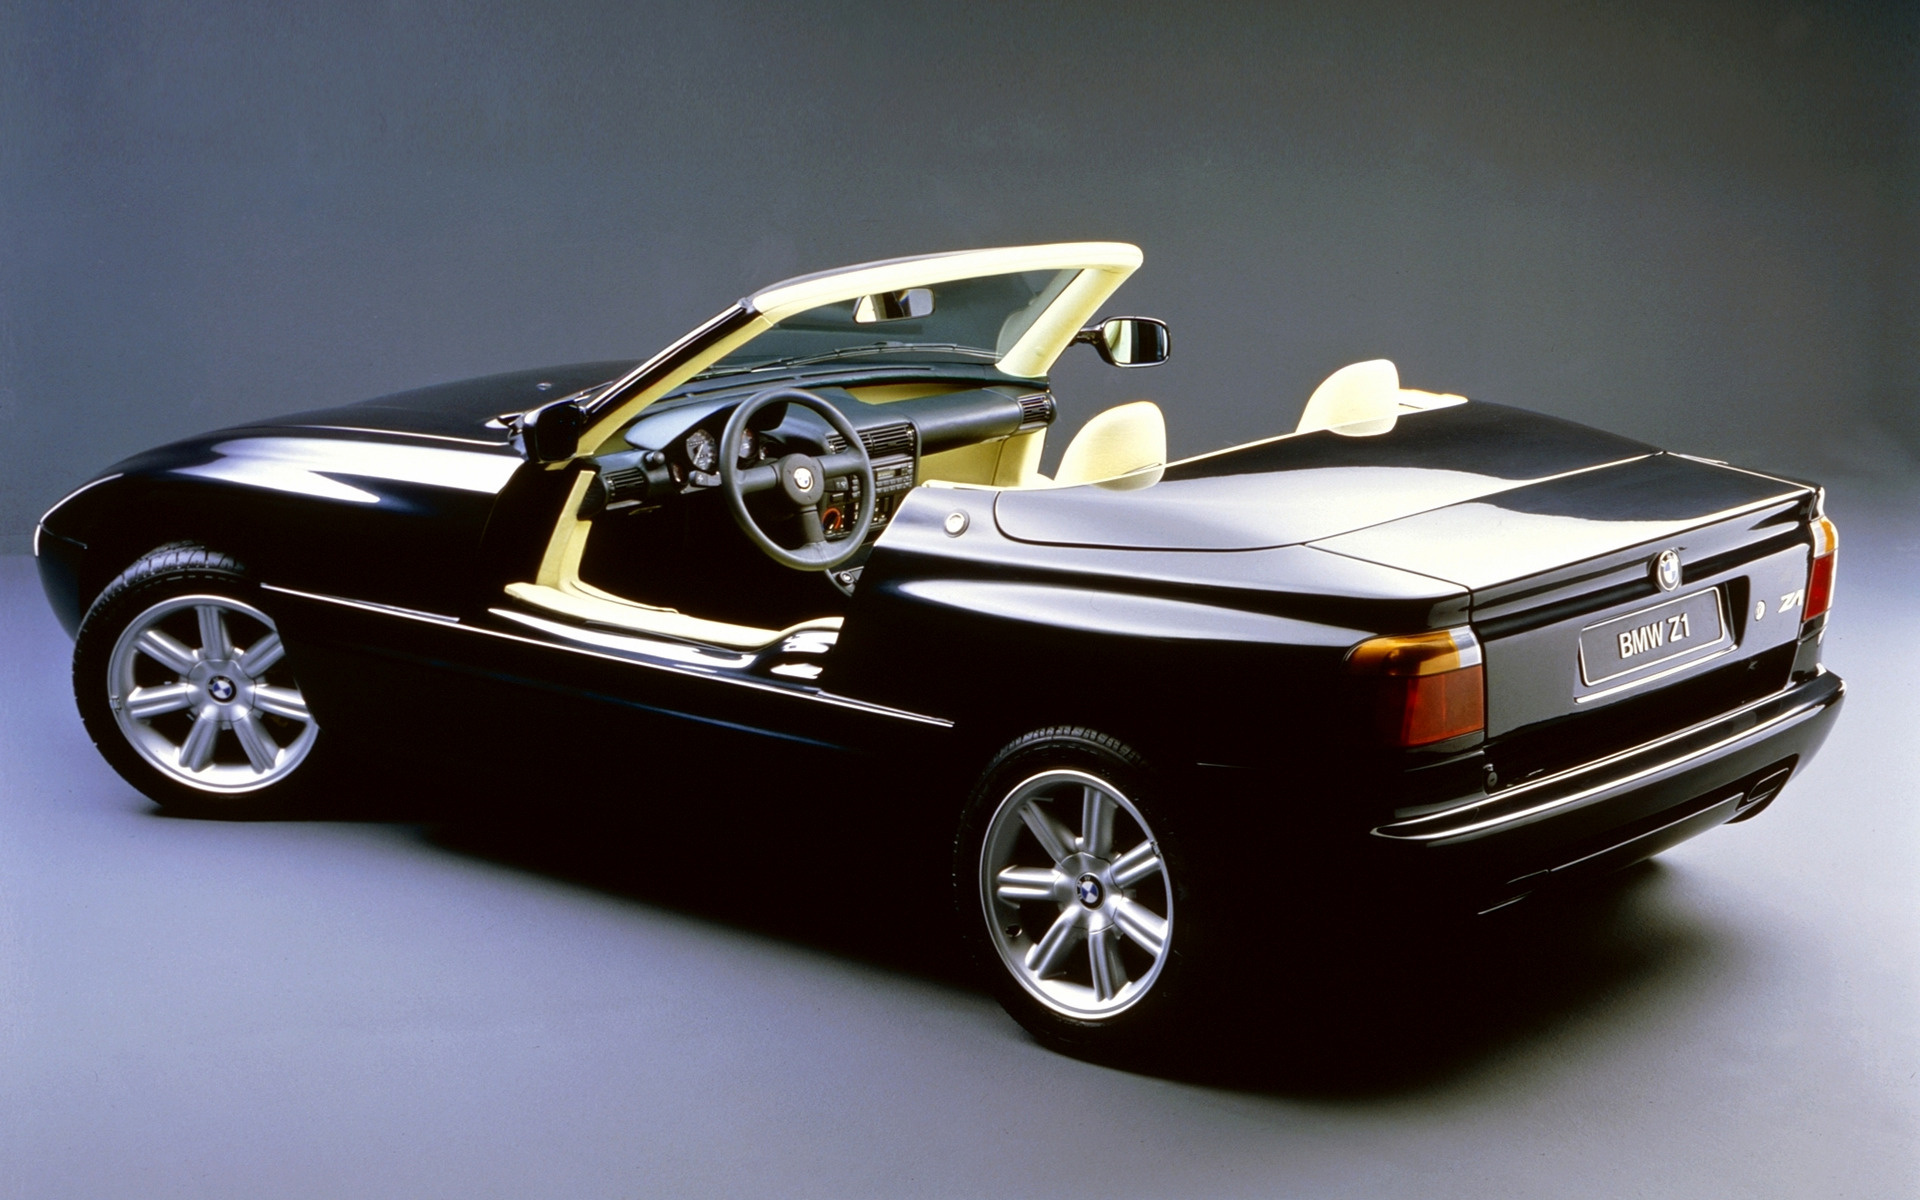 BMW Z1 (1988) Wallpapers and HD Images - Car Pixel